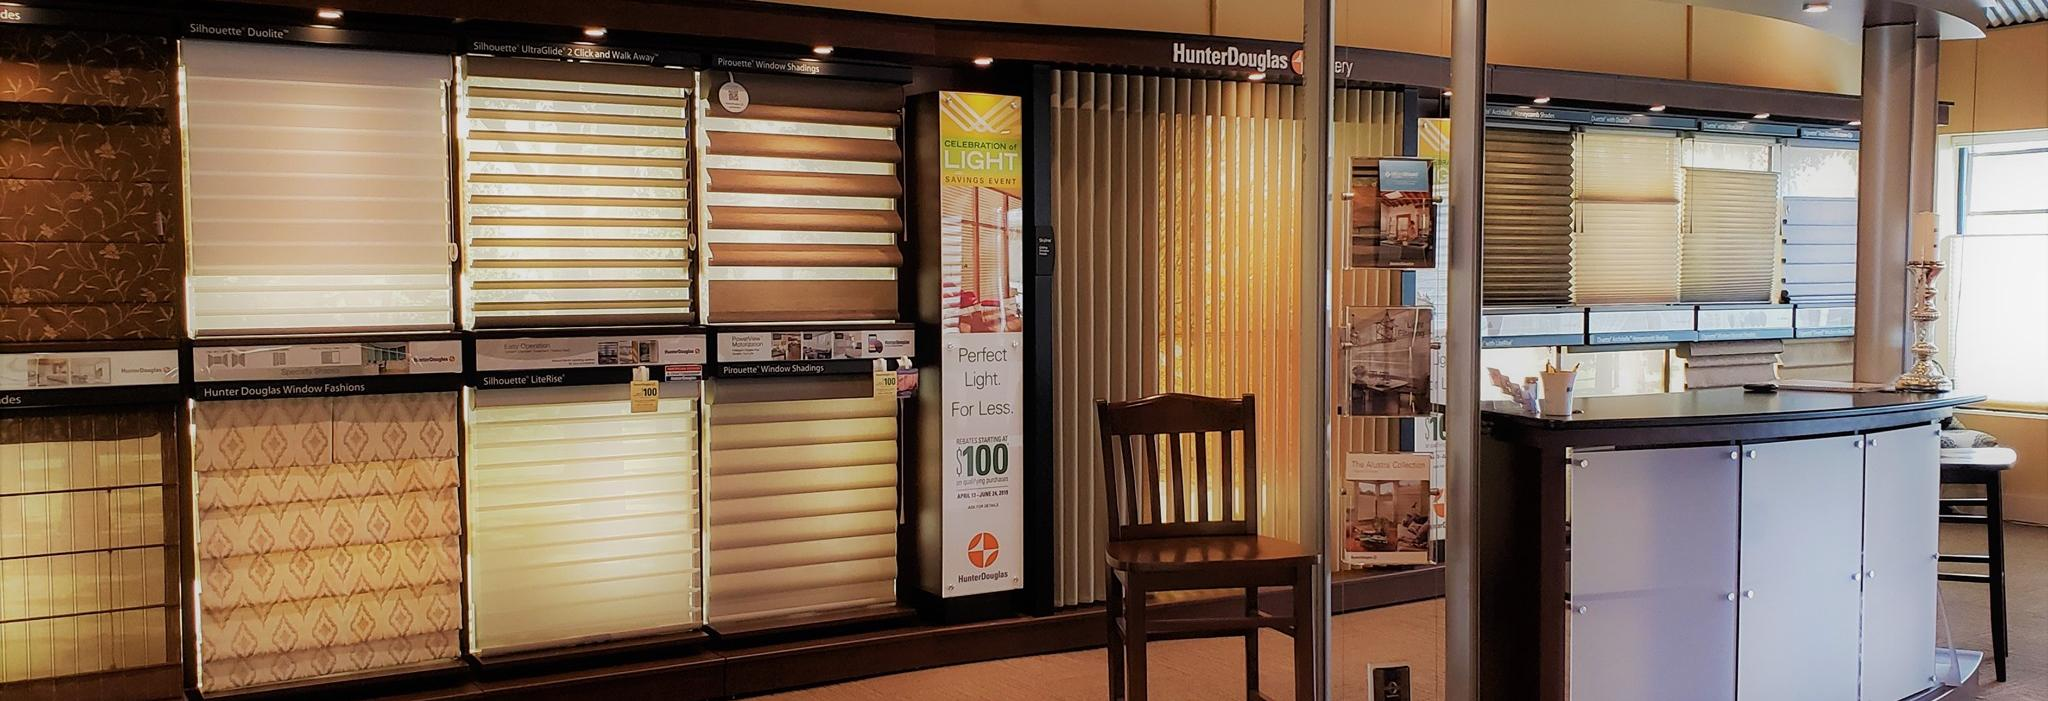 Blinds & Designs in Wyomissing, PA banner